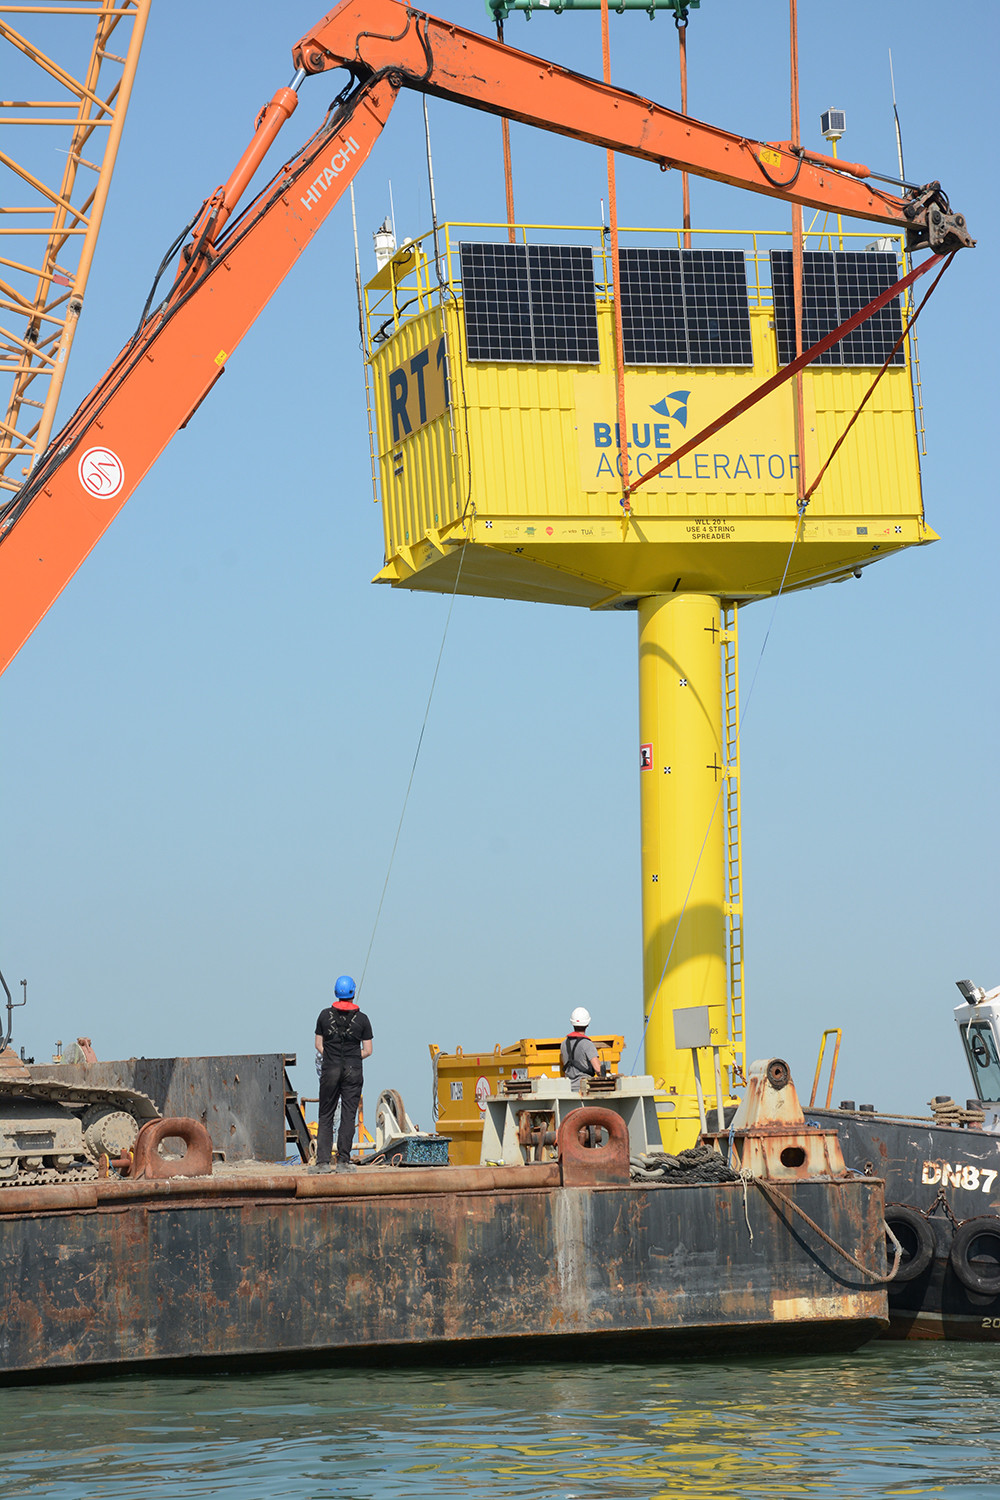 The container was re-installed on 18 September 2020.